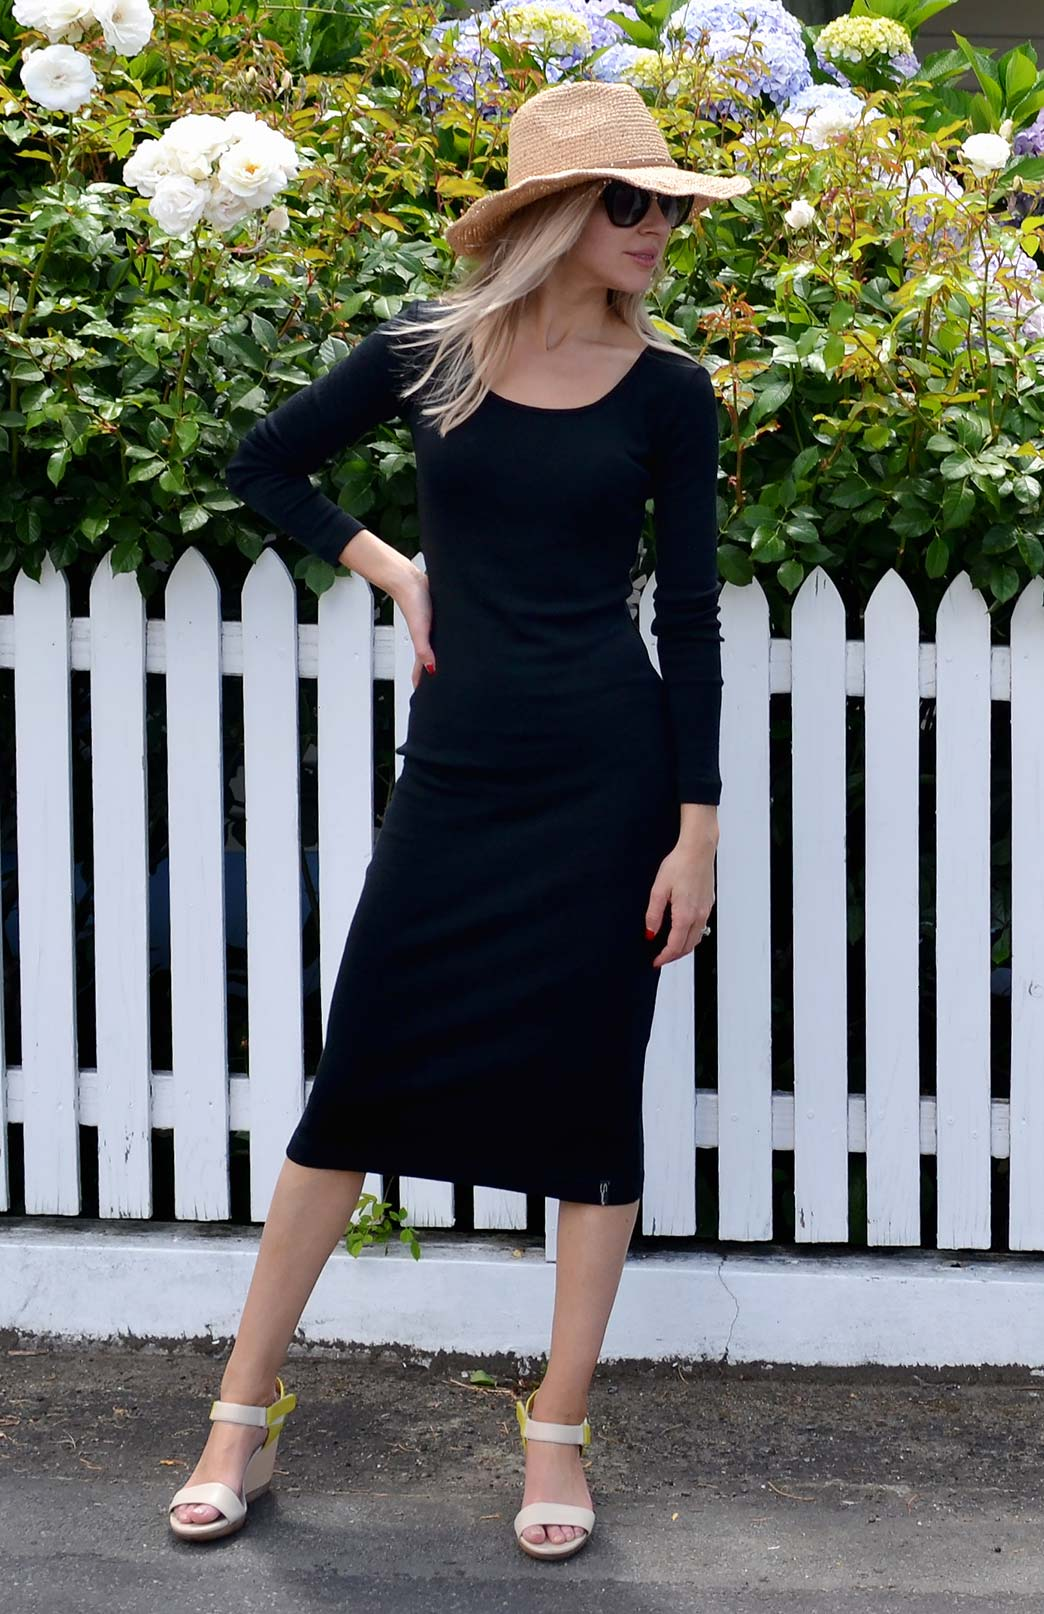 Lana Midi Dress - Women's Black Long Sleeve Winter Wool Dress - Smitten Merino Tasmania Australia